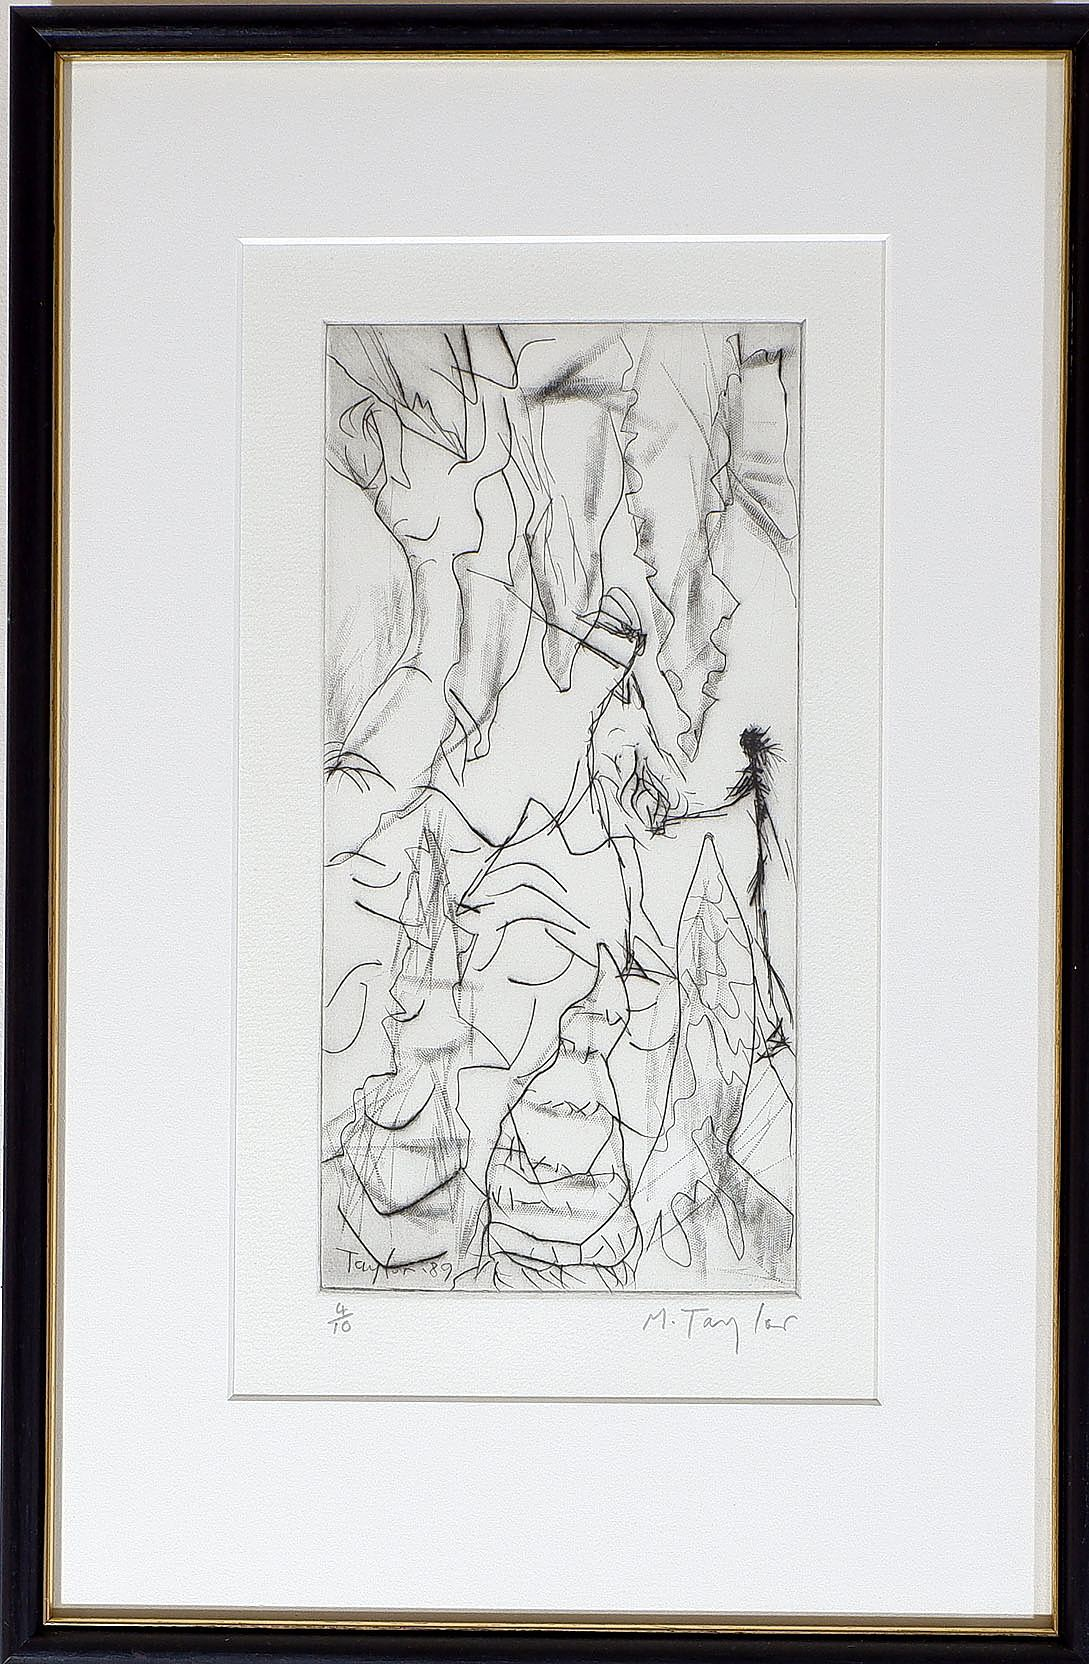 'Michael Franklin Taylor (b. 1933) Two Etchings'